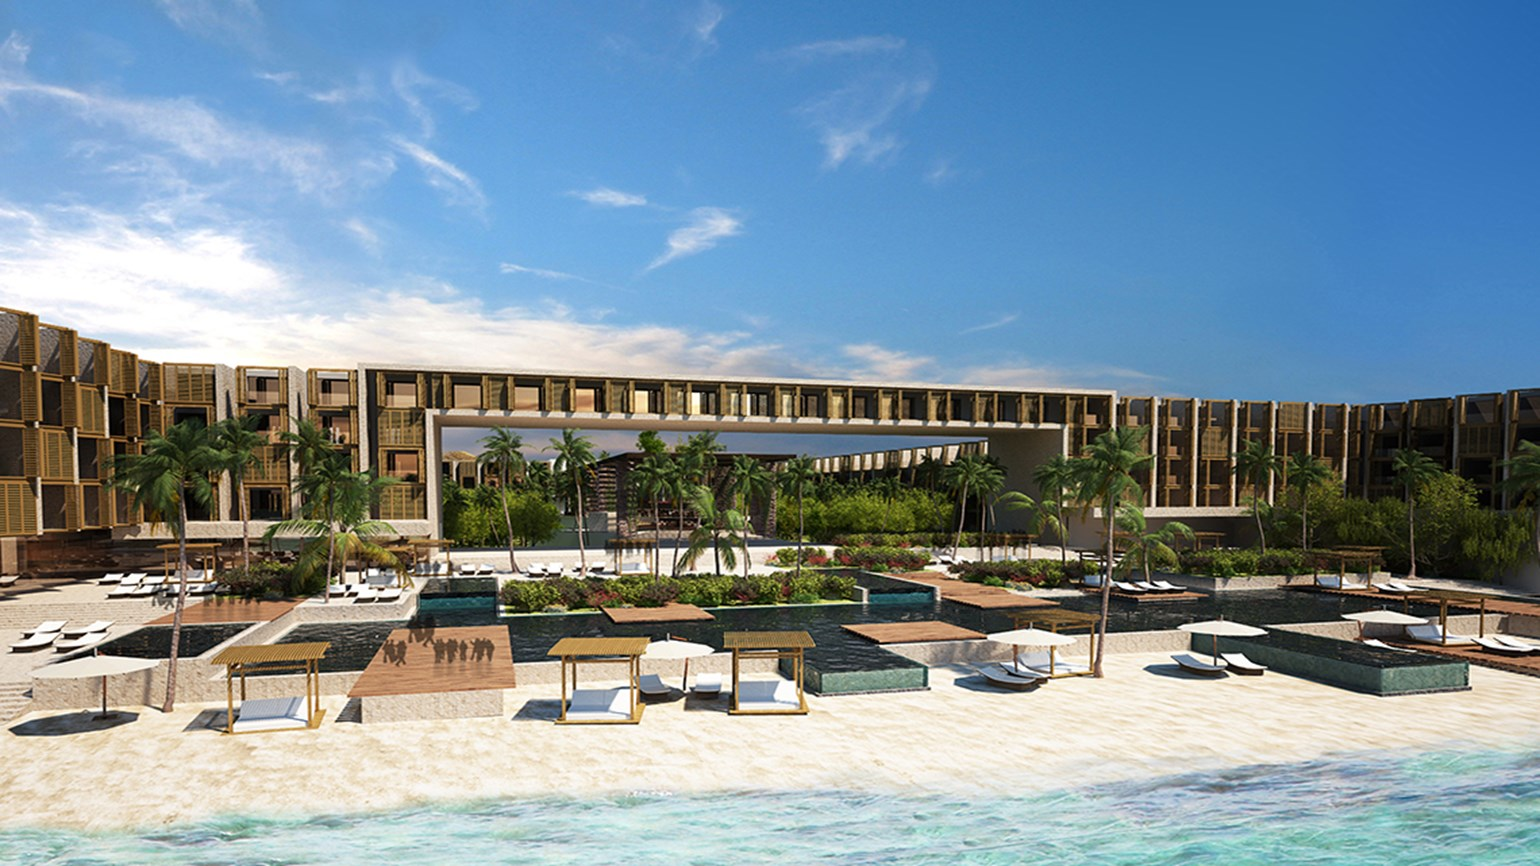 Grand Hyatt to open in Playa del Carmen next month